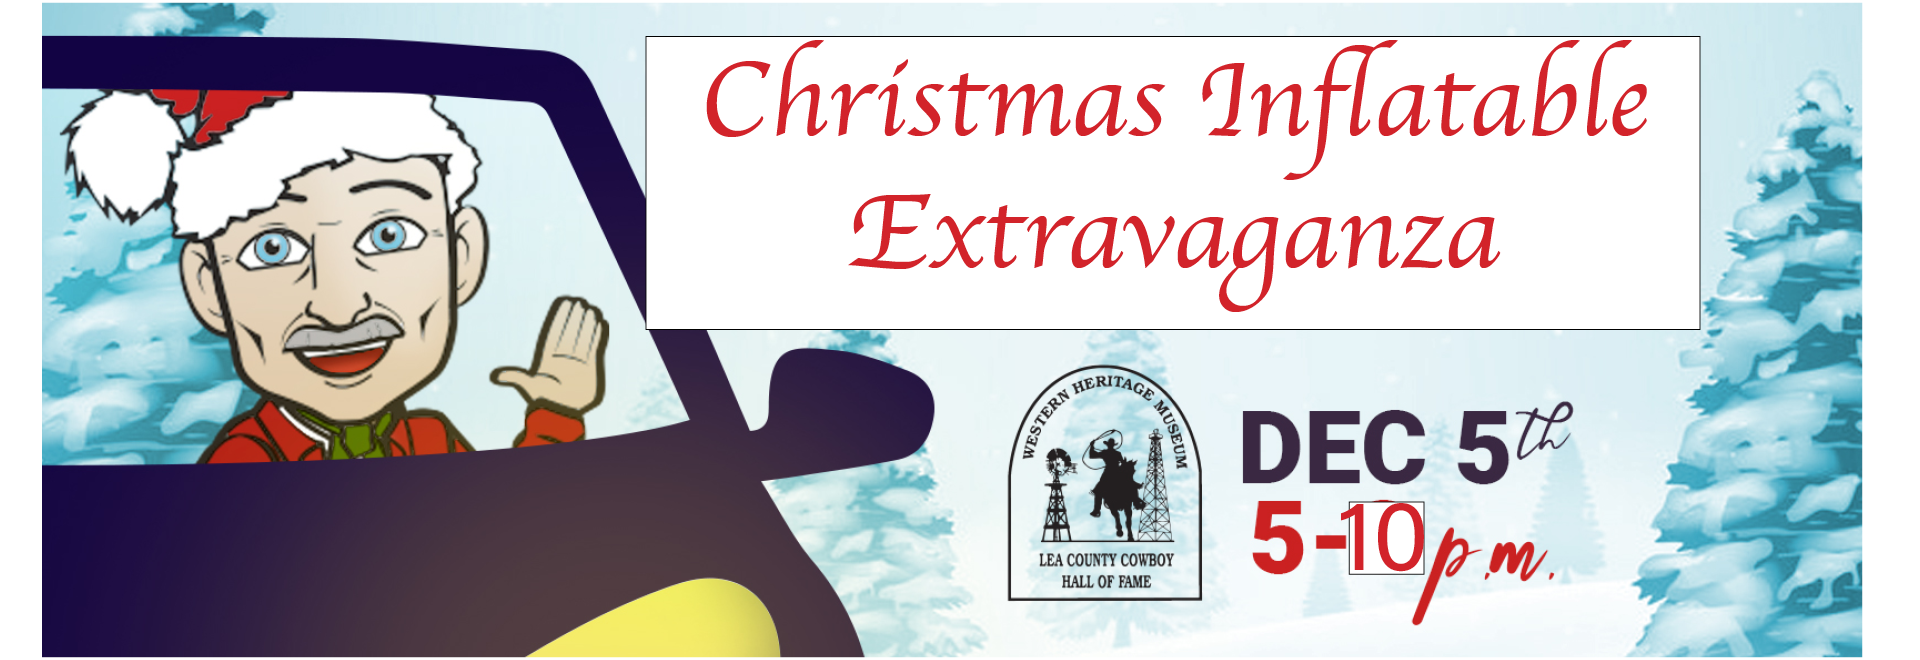 Christmas Inflatable Extravaganza